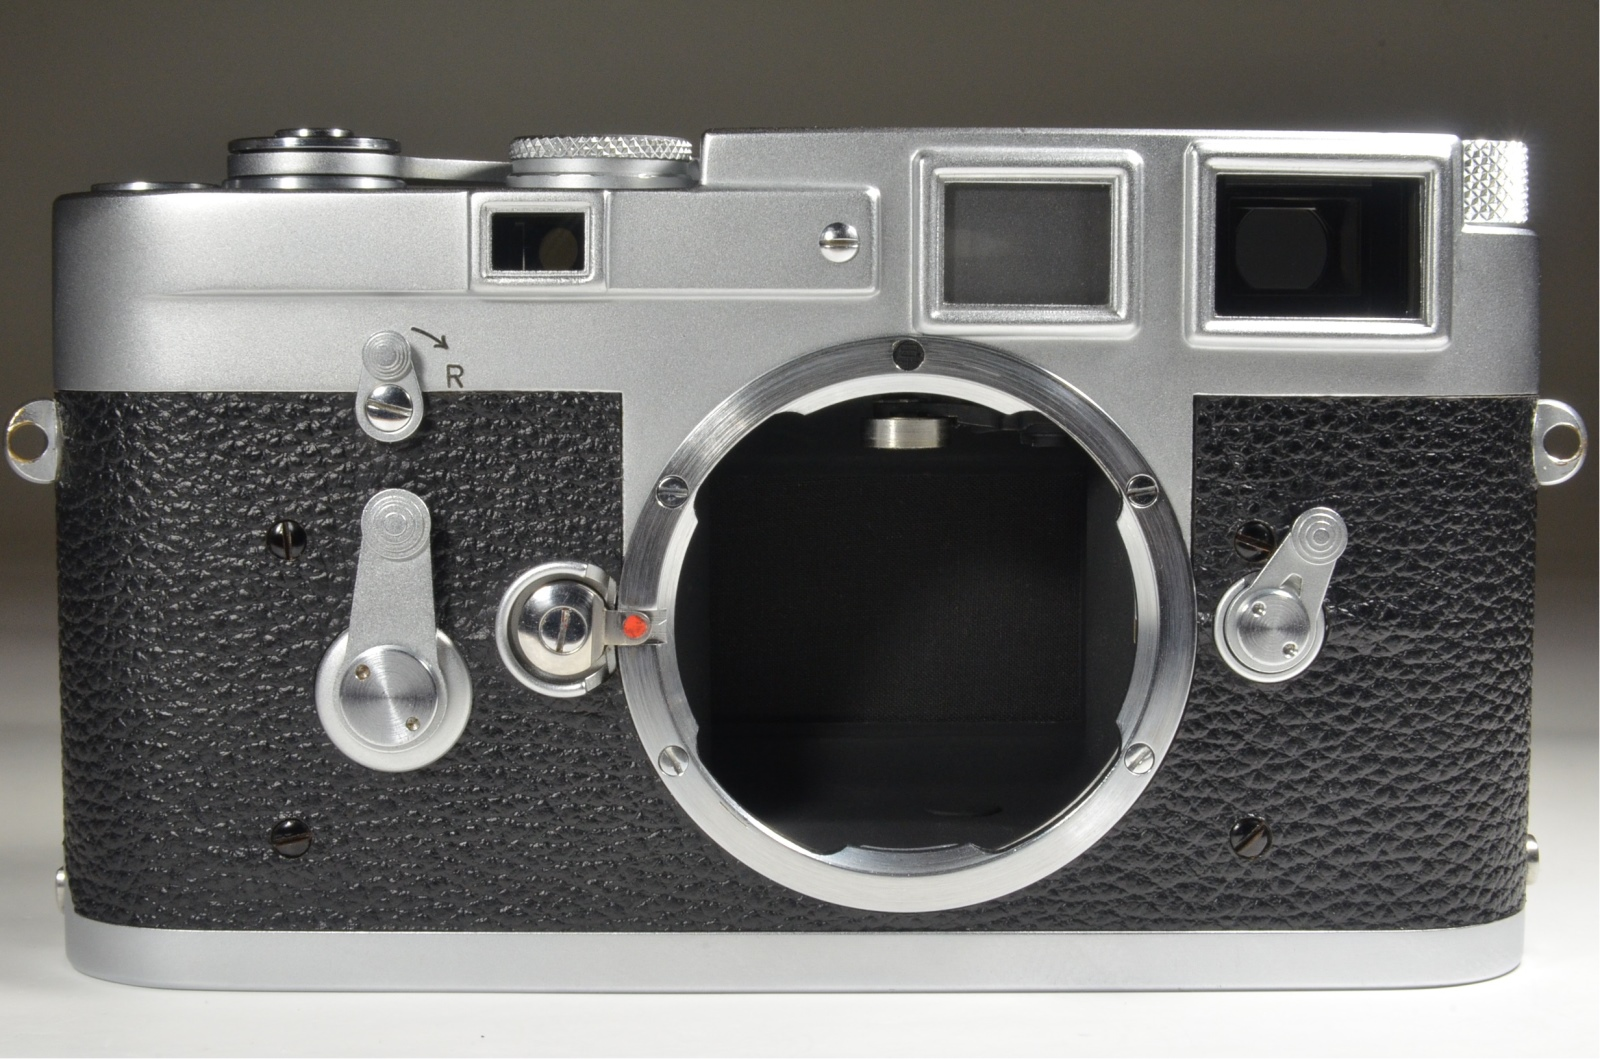 leica m3 single stroke year 1961 rangefinder s/n 1024327 with strap